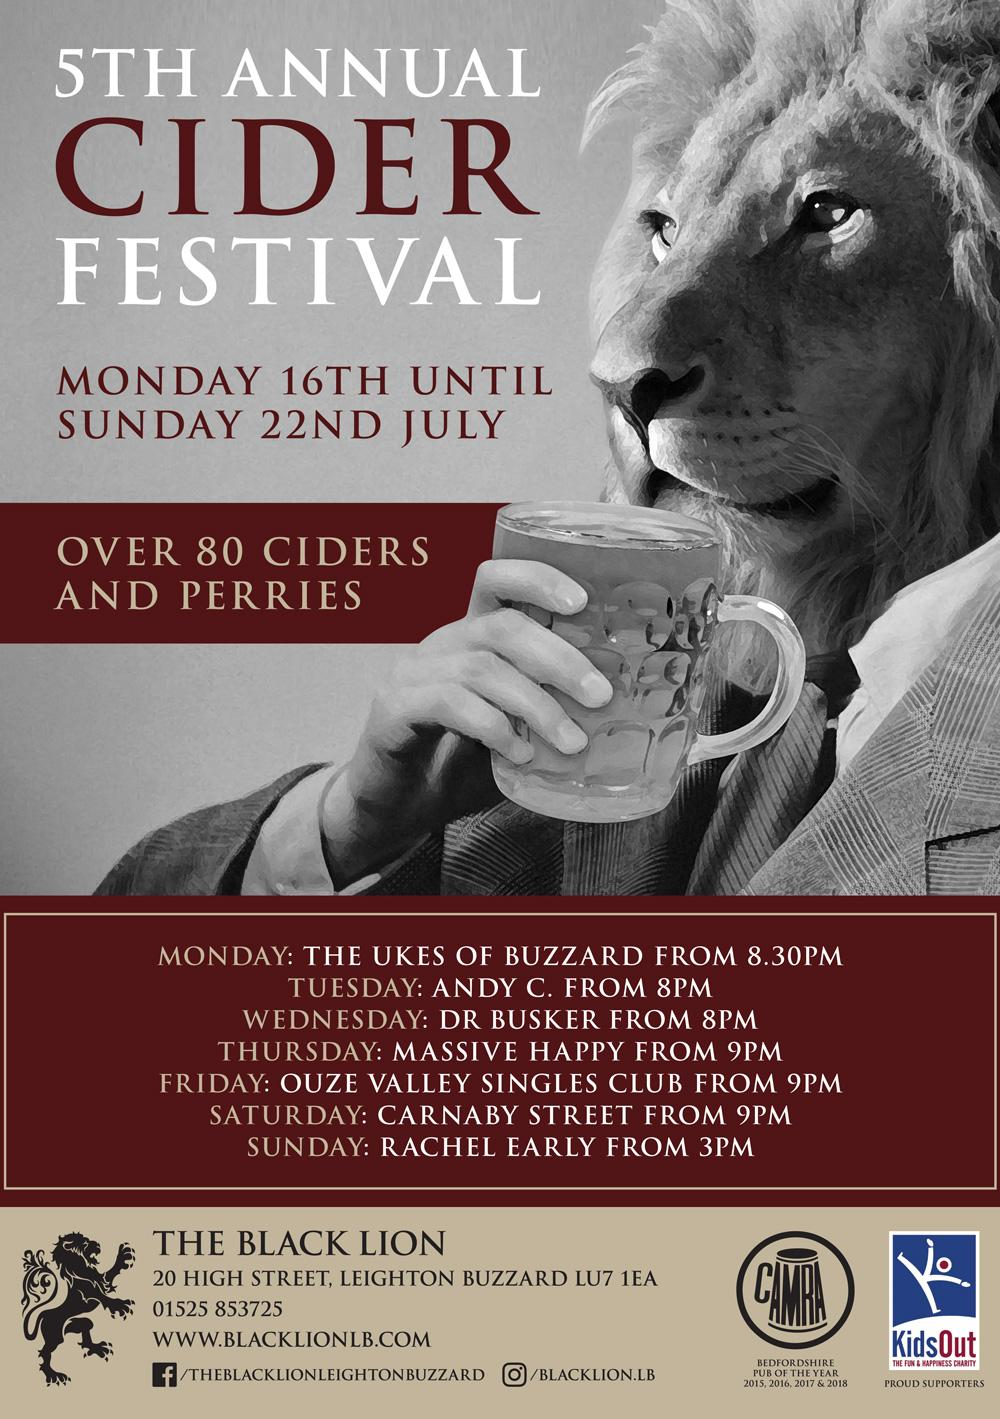 5th Annual Cider Fesitval